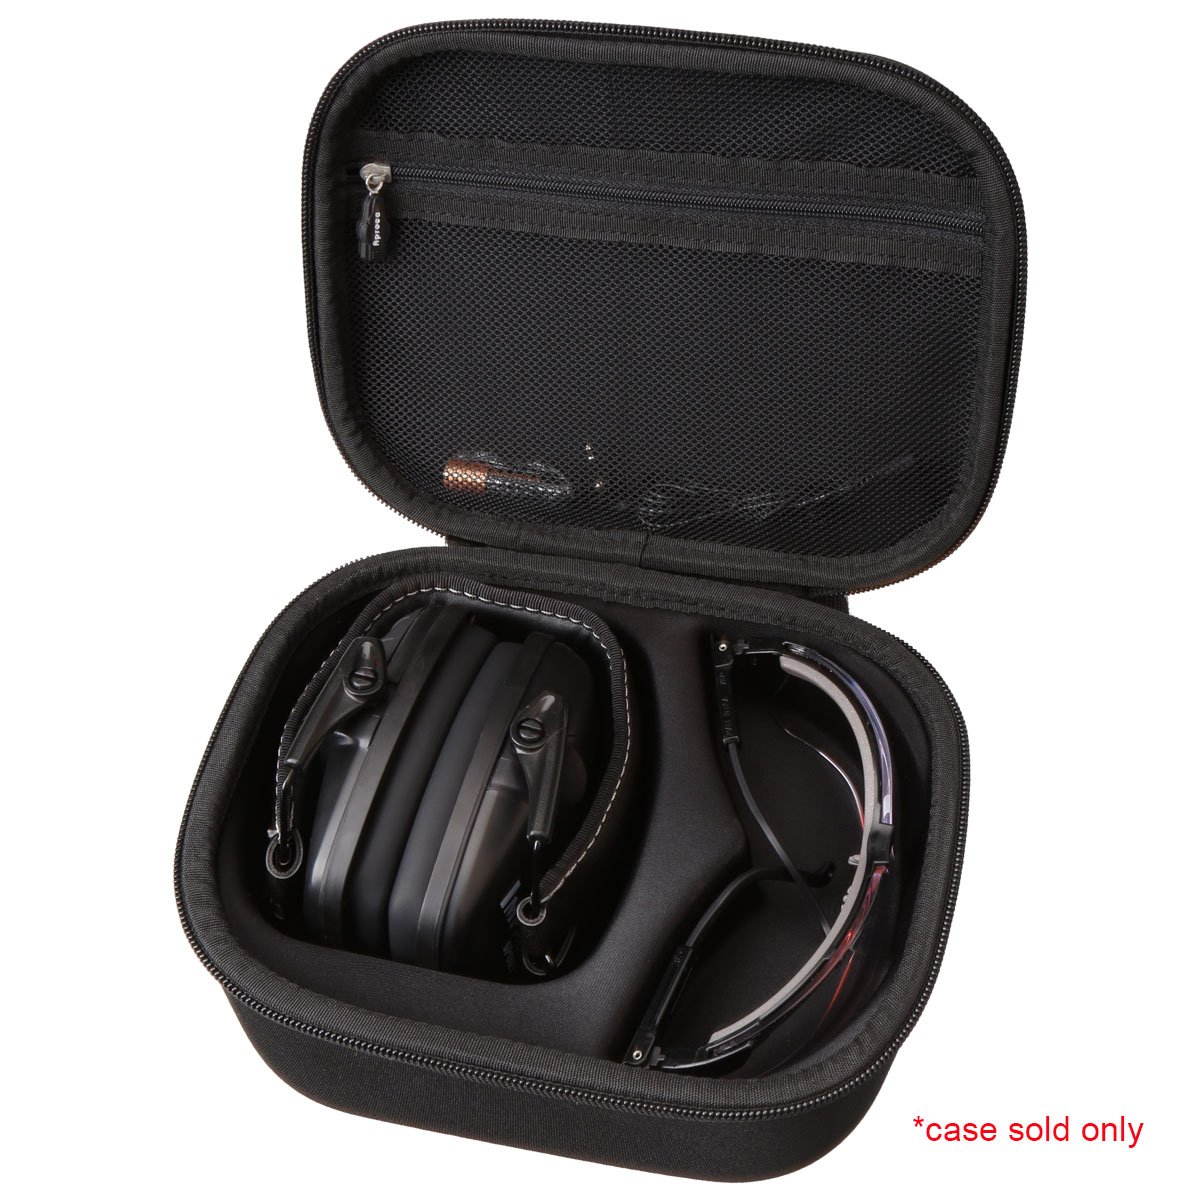 Aproca Hard Storage Travel Case Compatible Howard Leight by Honeywell Impact Sport Sound Amplification Electronic Shooting Earmuff and Genesis Sharp-Shooter Safety Eyewear Glasses(black)